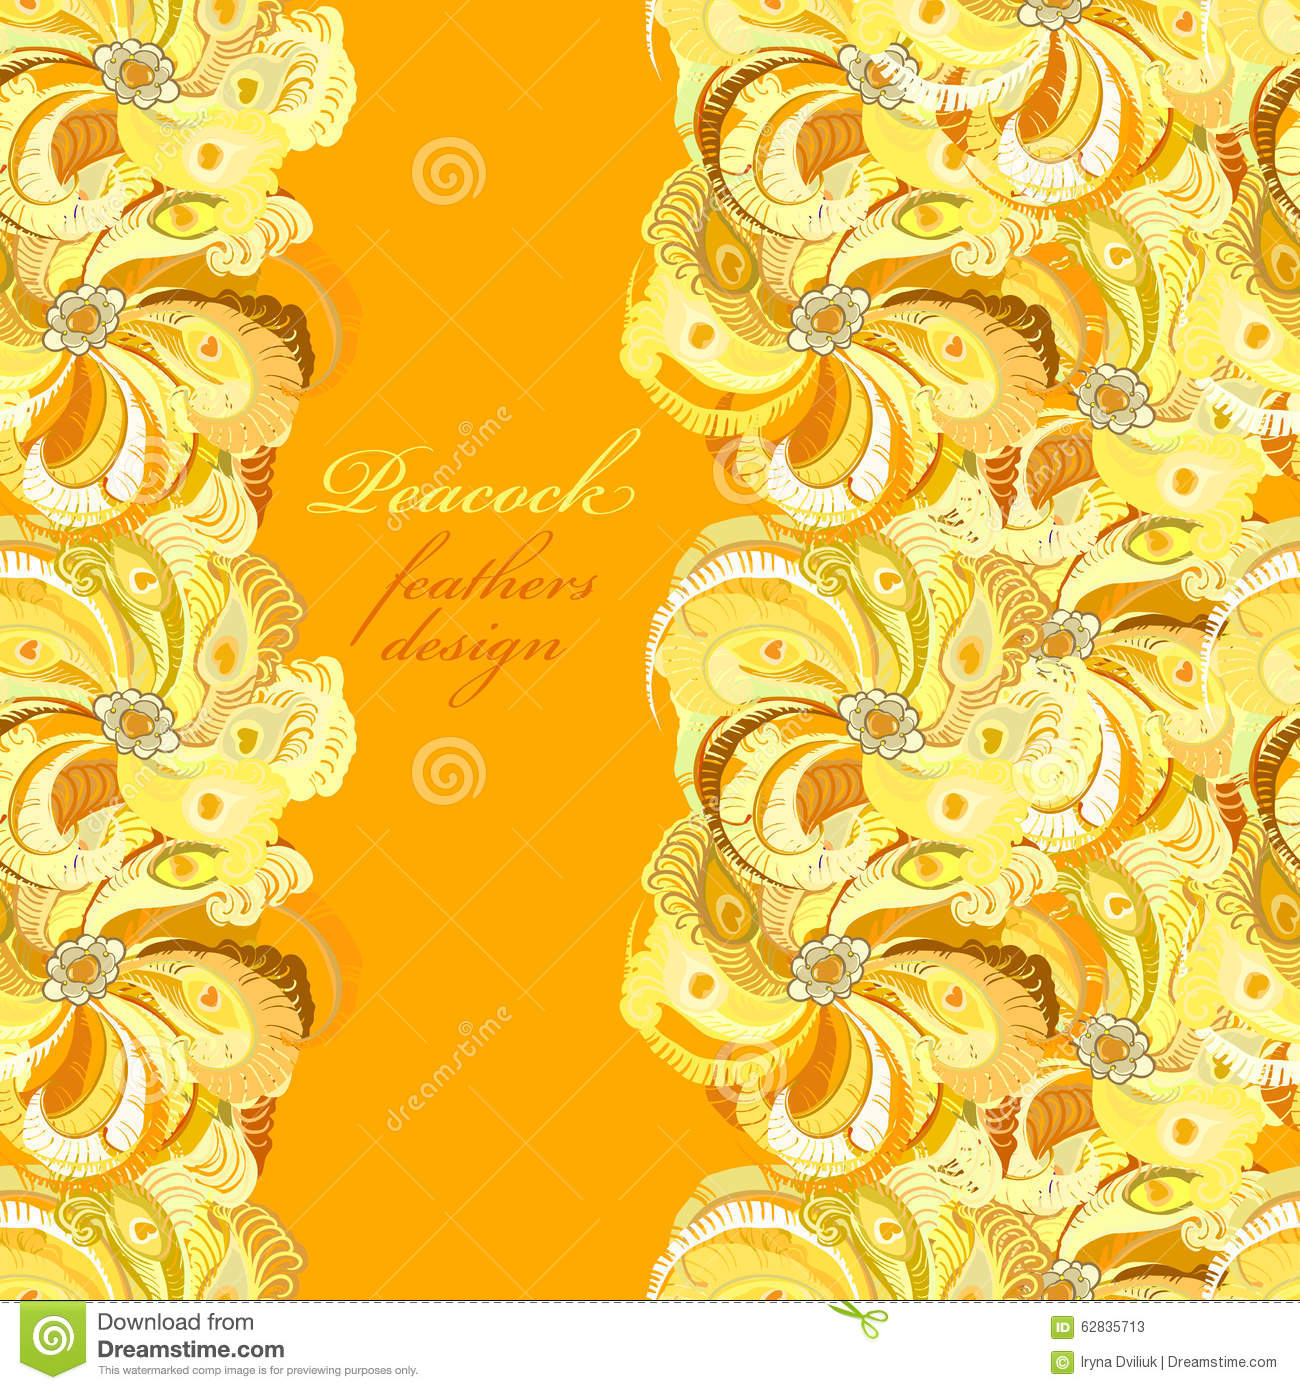 Cute Animal Print Wallpaper Yellow Orange Peacock Feathers Pattern Background Text